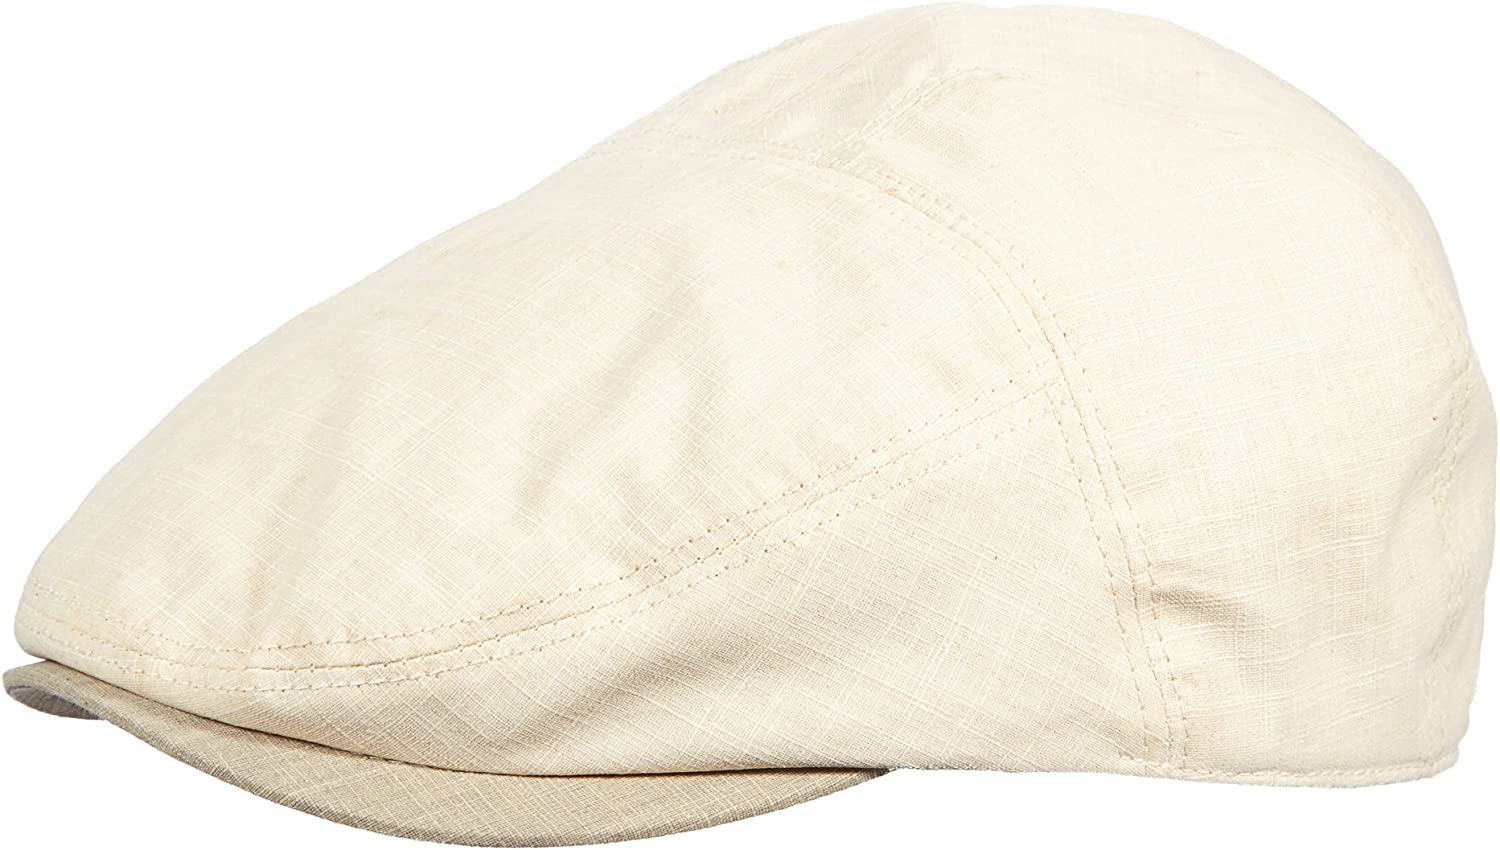 Stetson Cotton Ivy with Peak Hat Genuine Free Ranking TOP18 Shipping Contrast